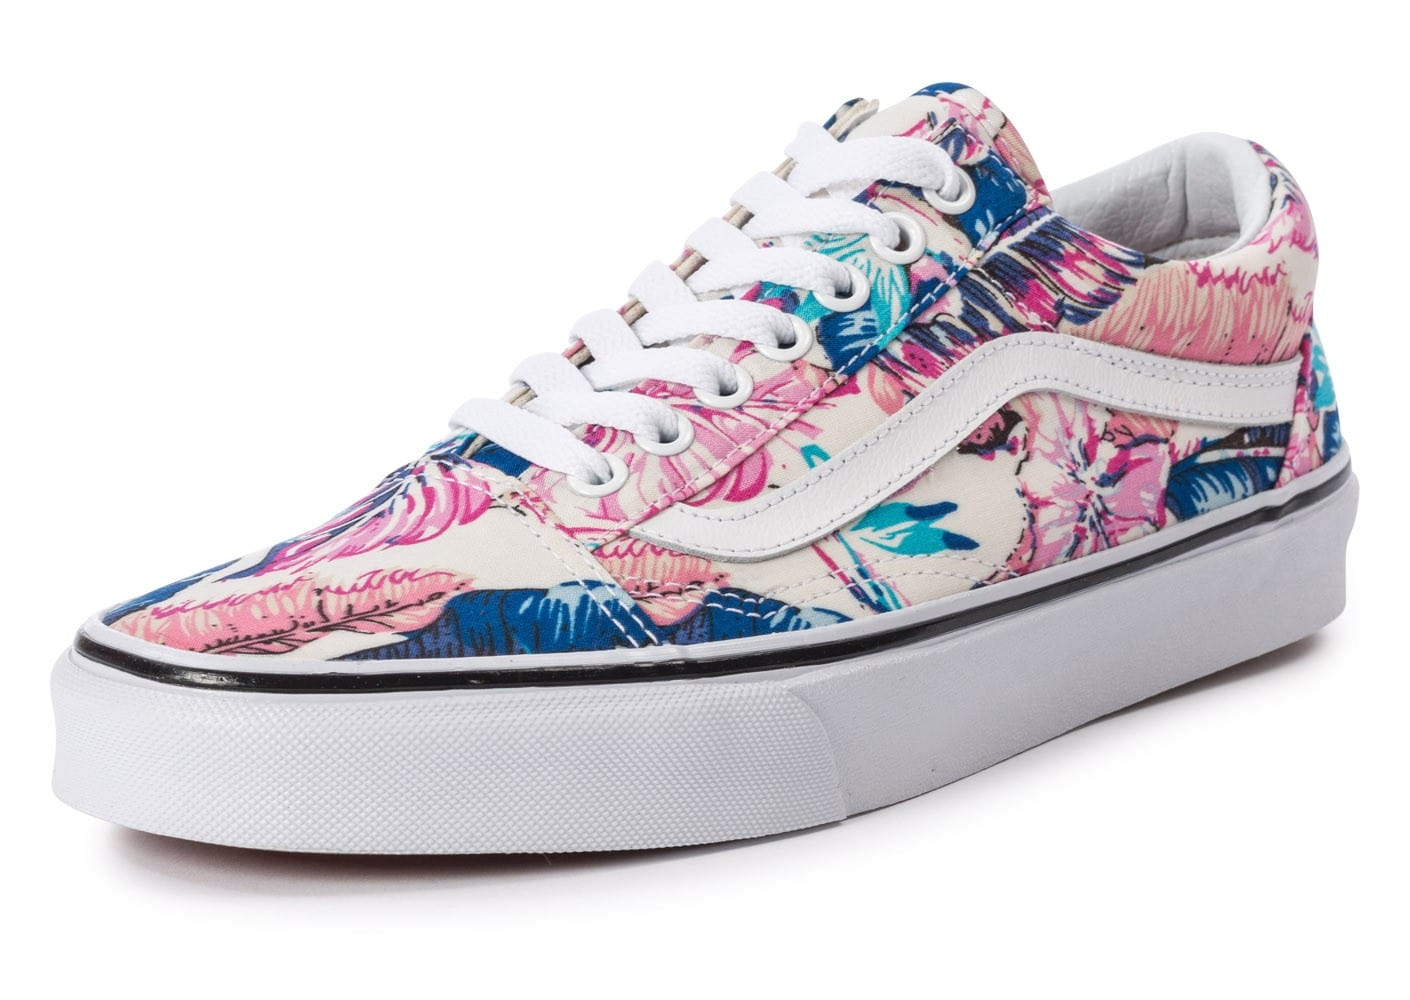 Baskets Tropical Vans R8qrtawx Old Skool Chaussures Femme Chausport UzpqMVGS